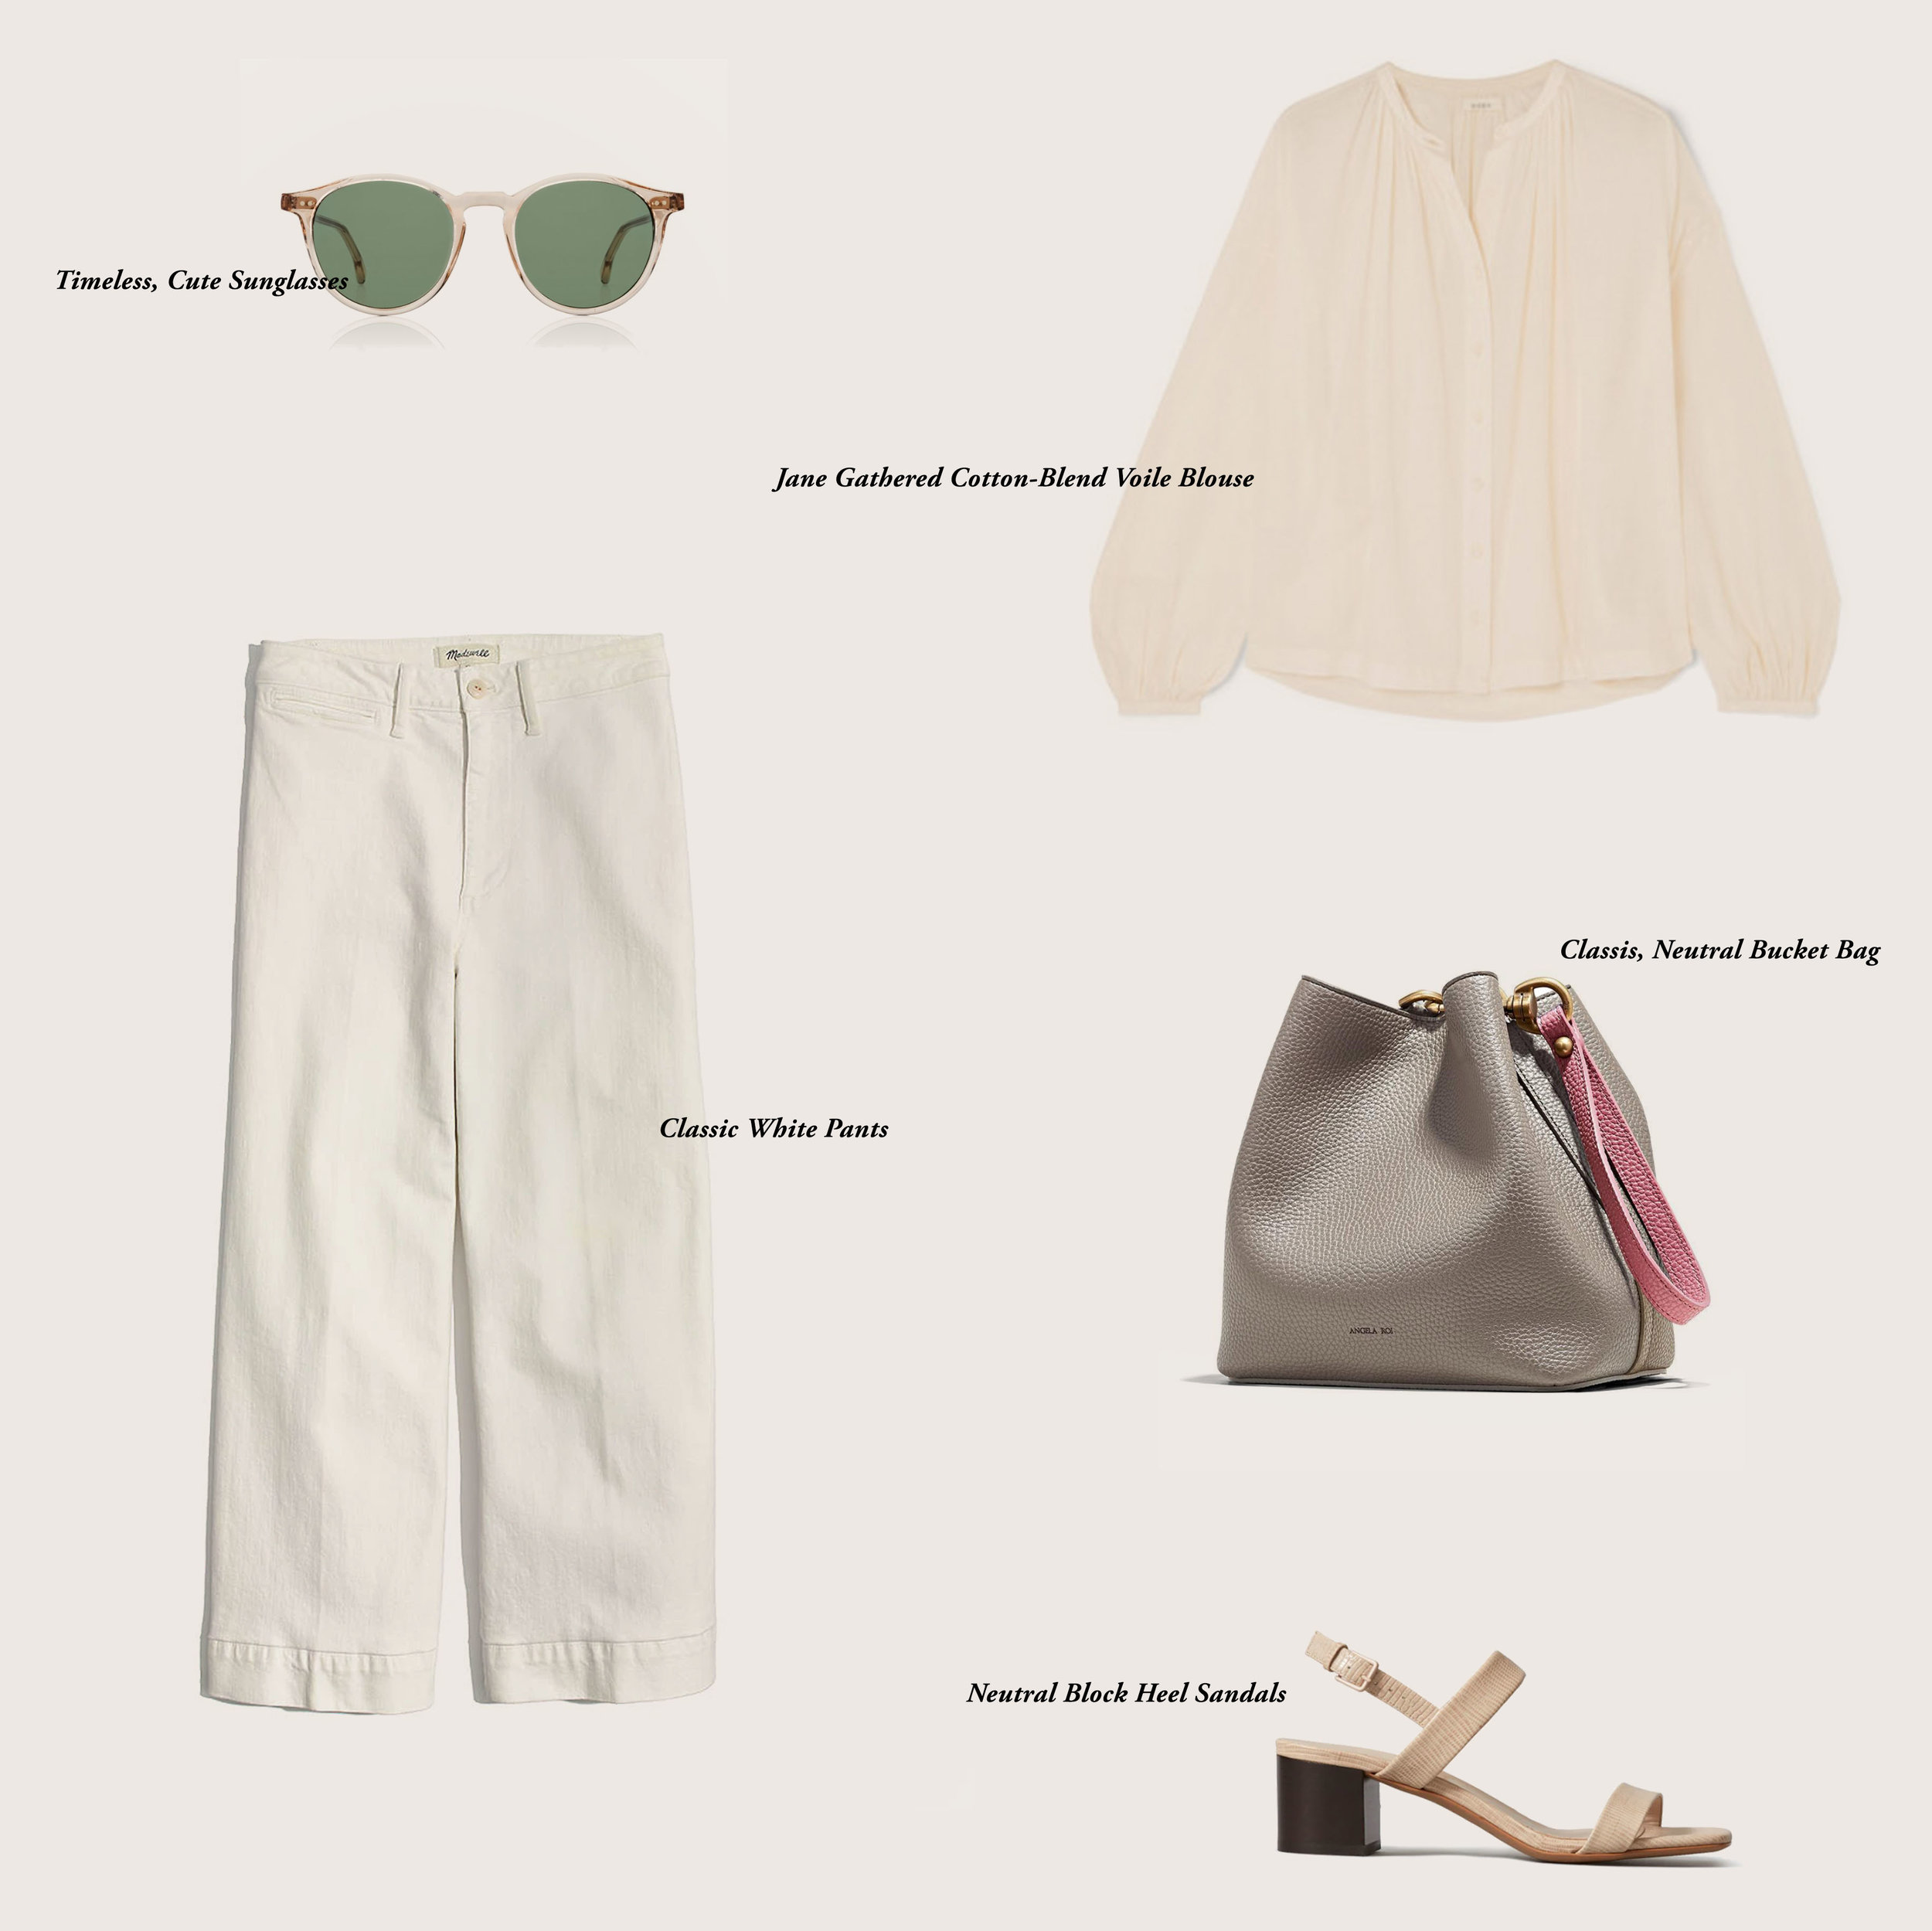 everlane-wide-leg-crop-doen-jane-everlane-block-heel-sandals-pantos-paris-sunglasses.jpg